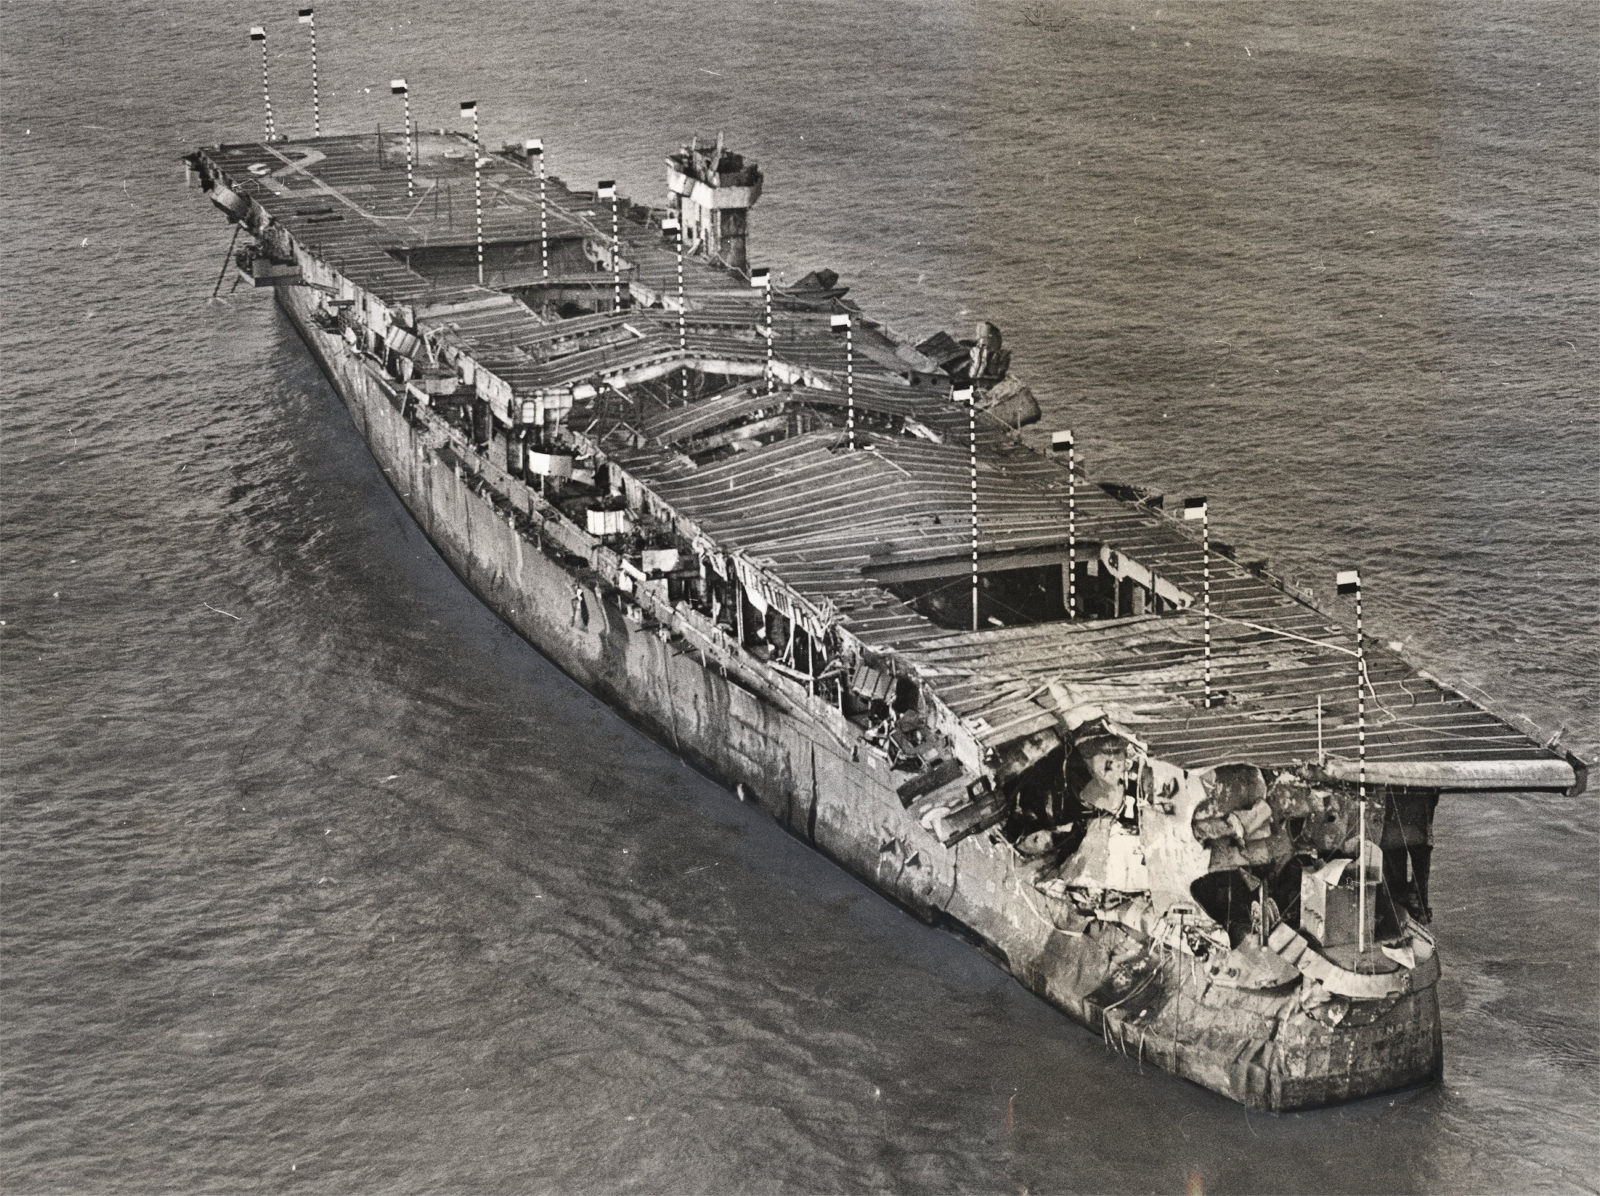 USS Independence wreck